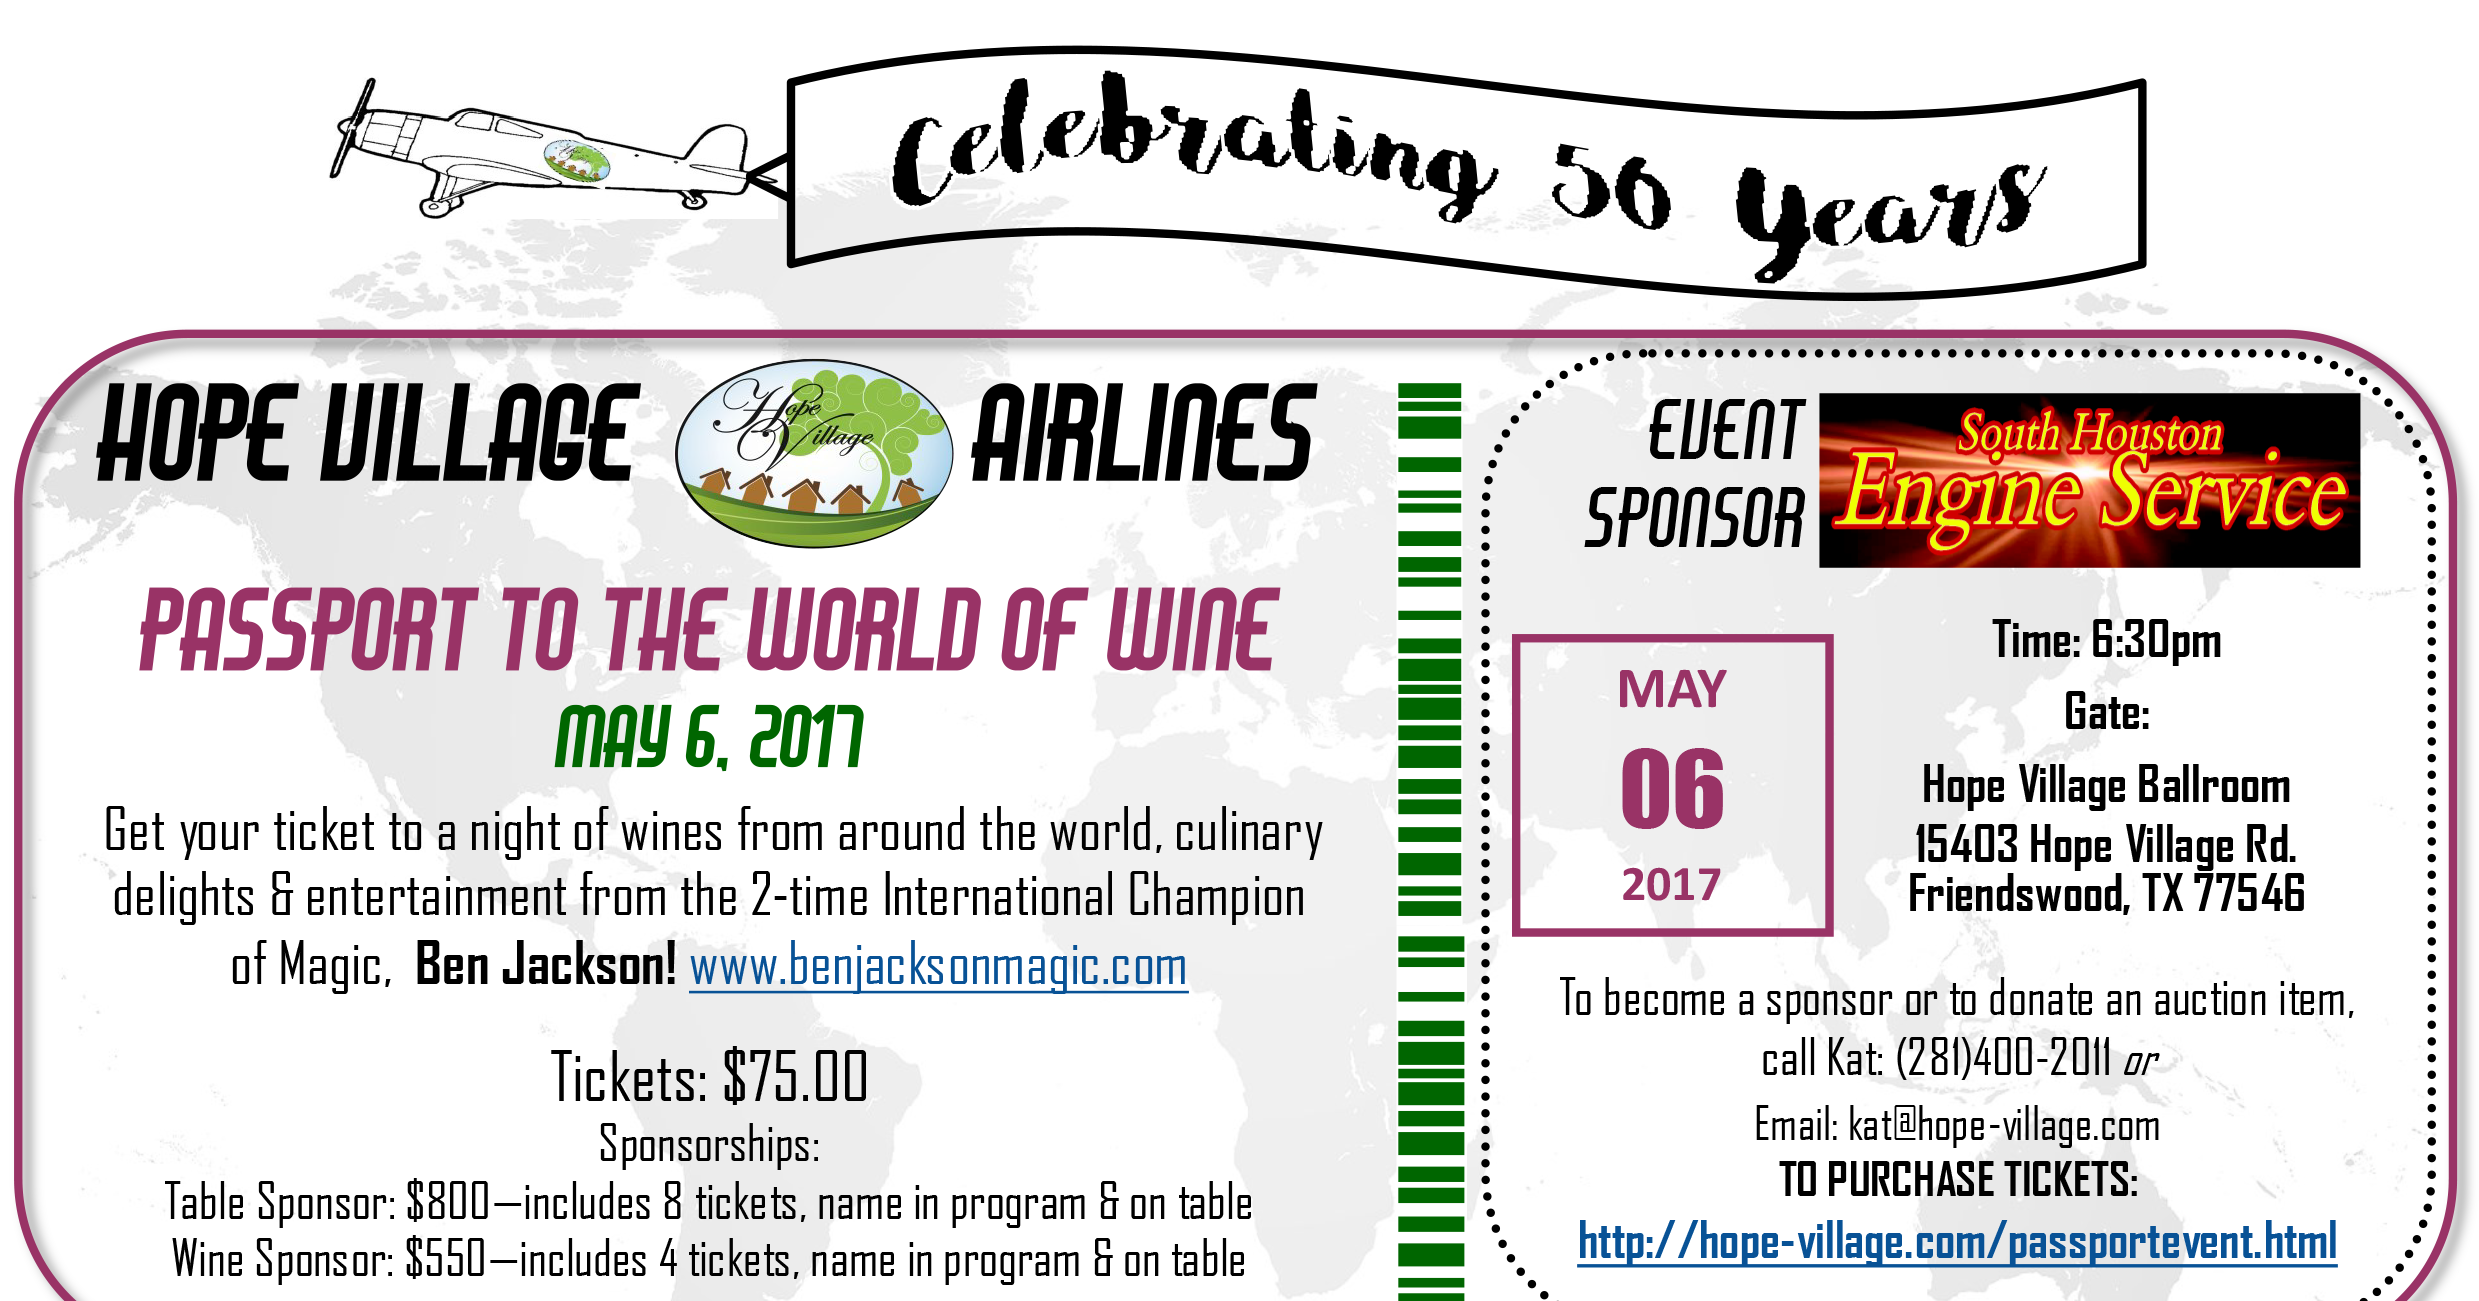 Passport to the World of Wine - Benefitting Hope Village Event options